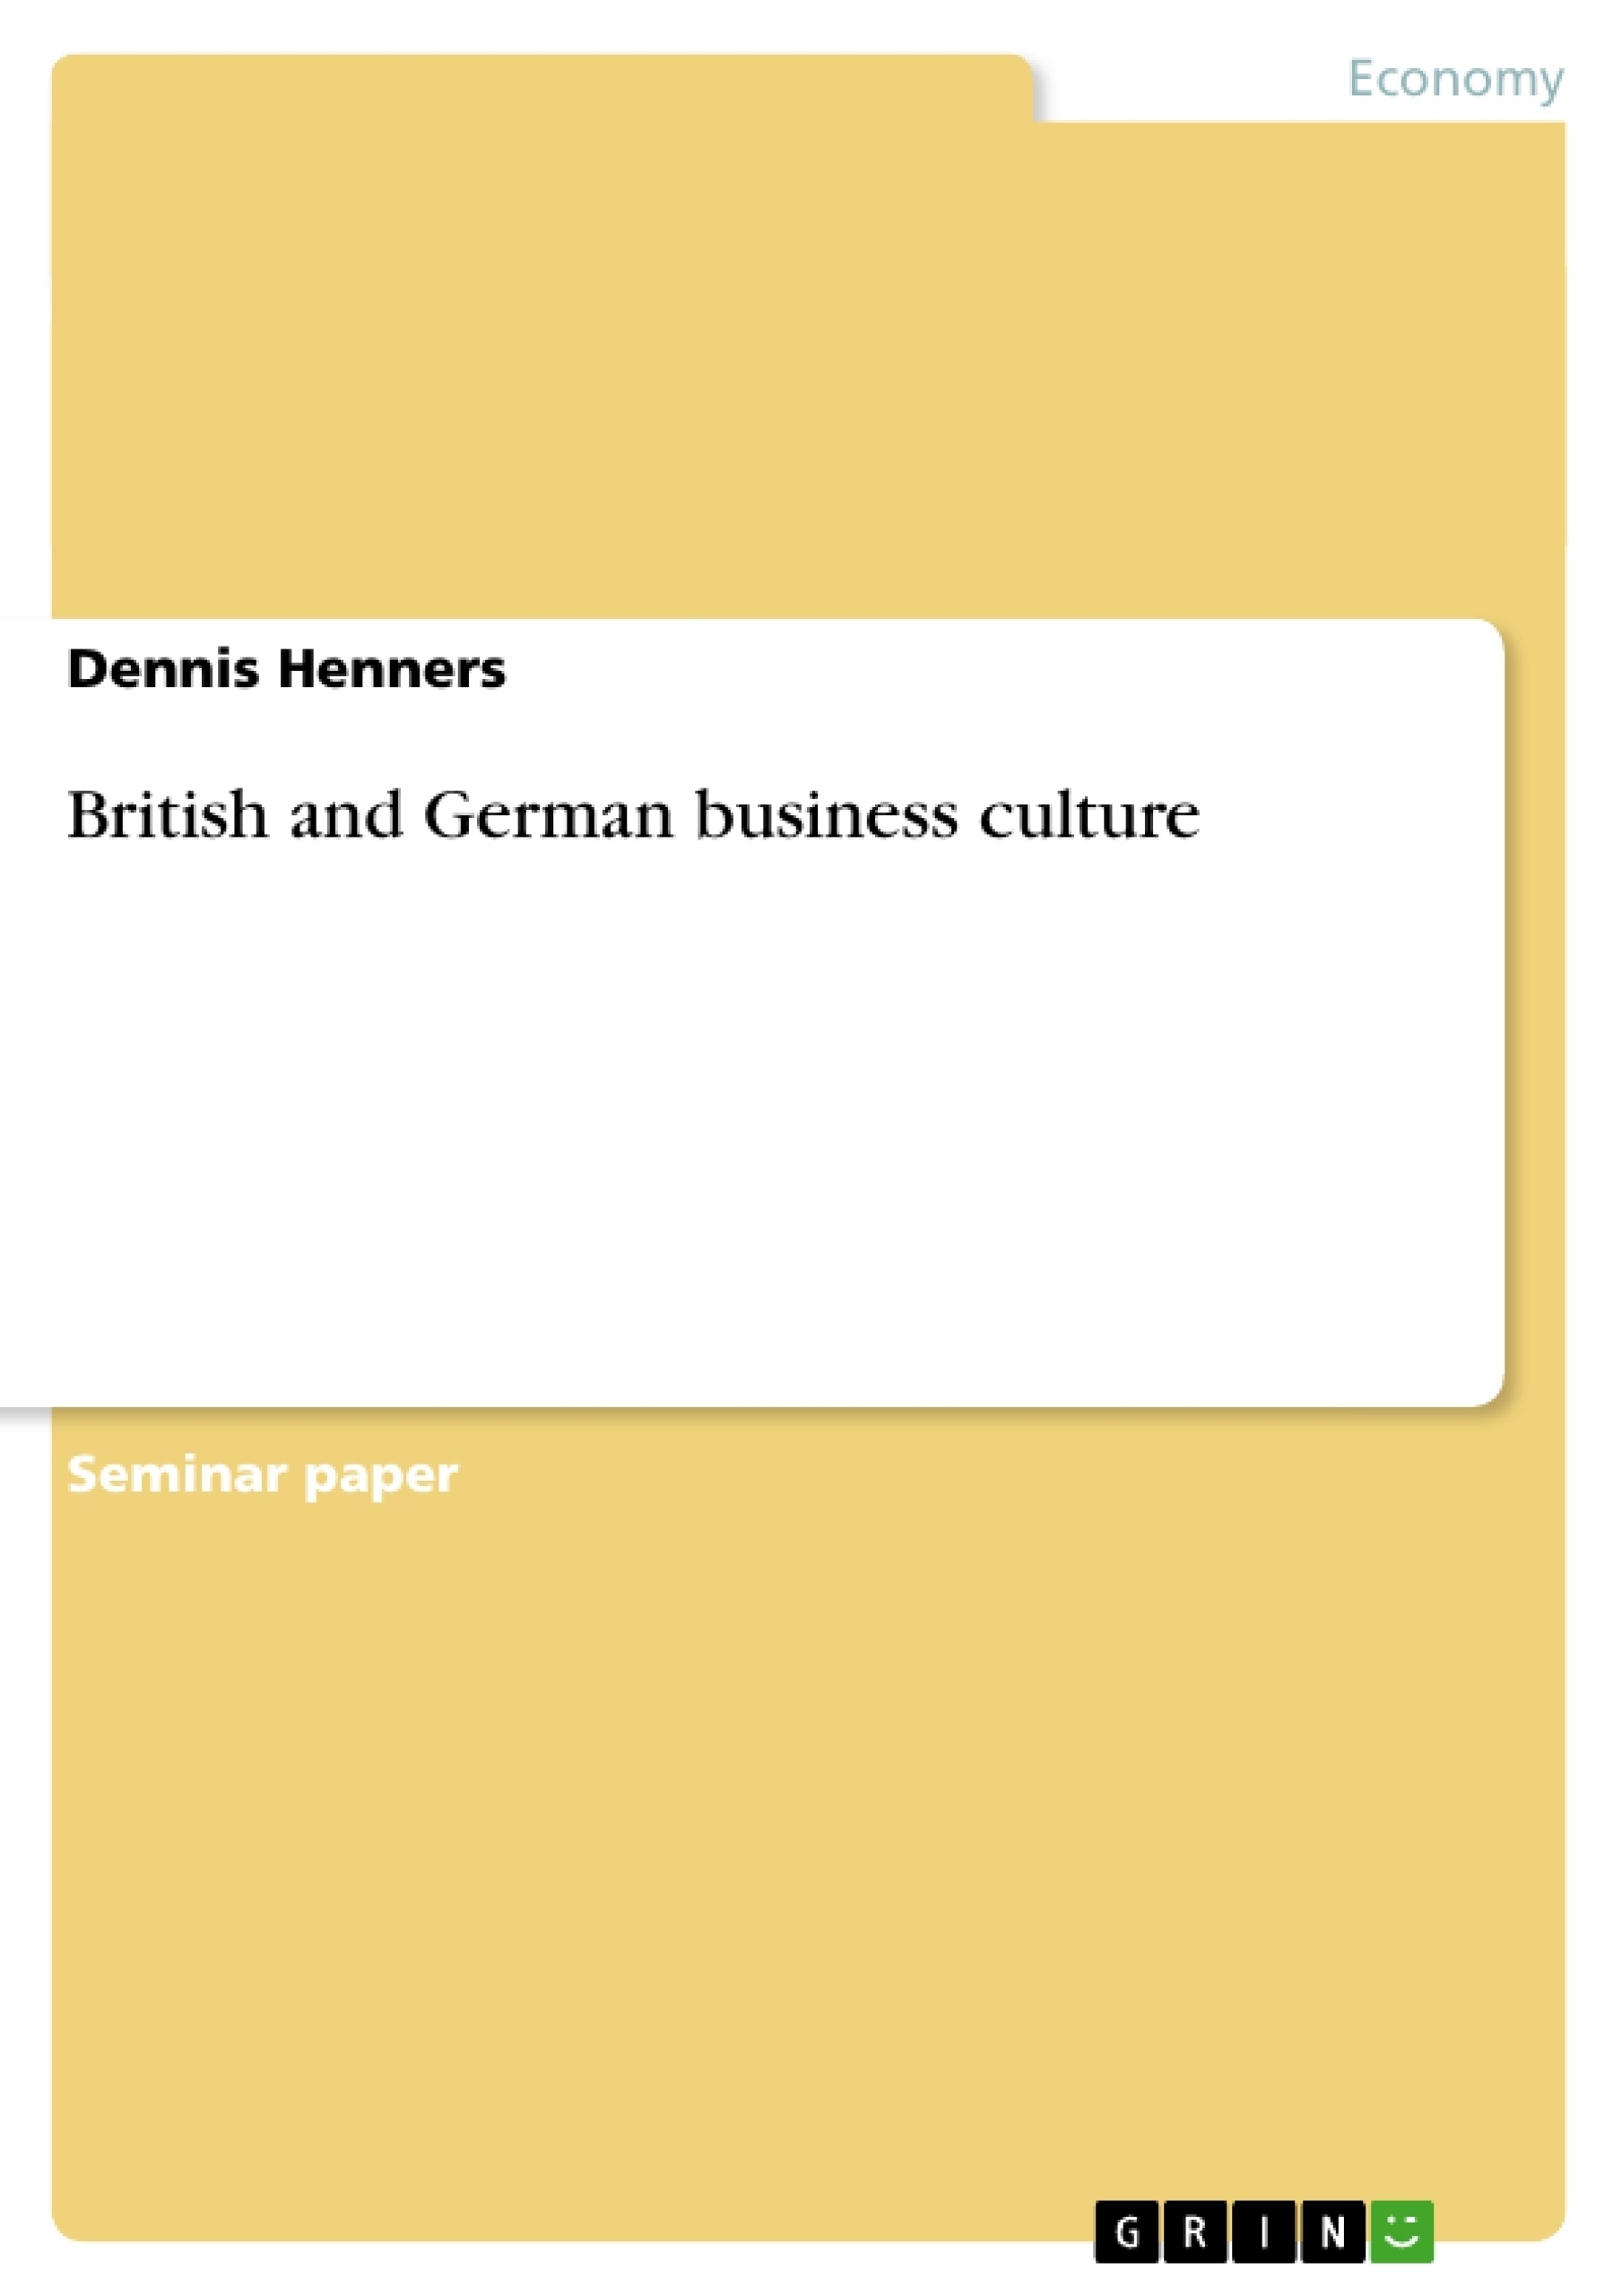 Title: British and German business culture